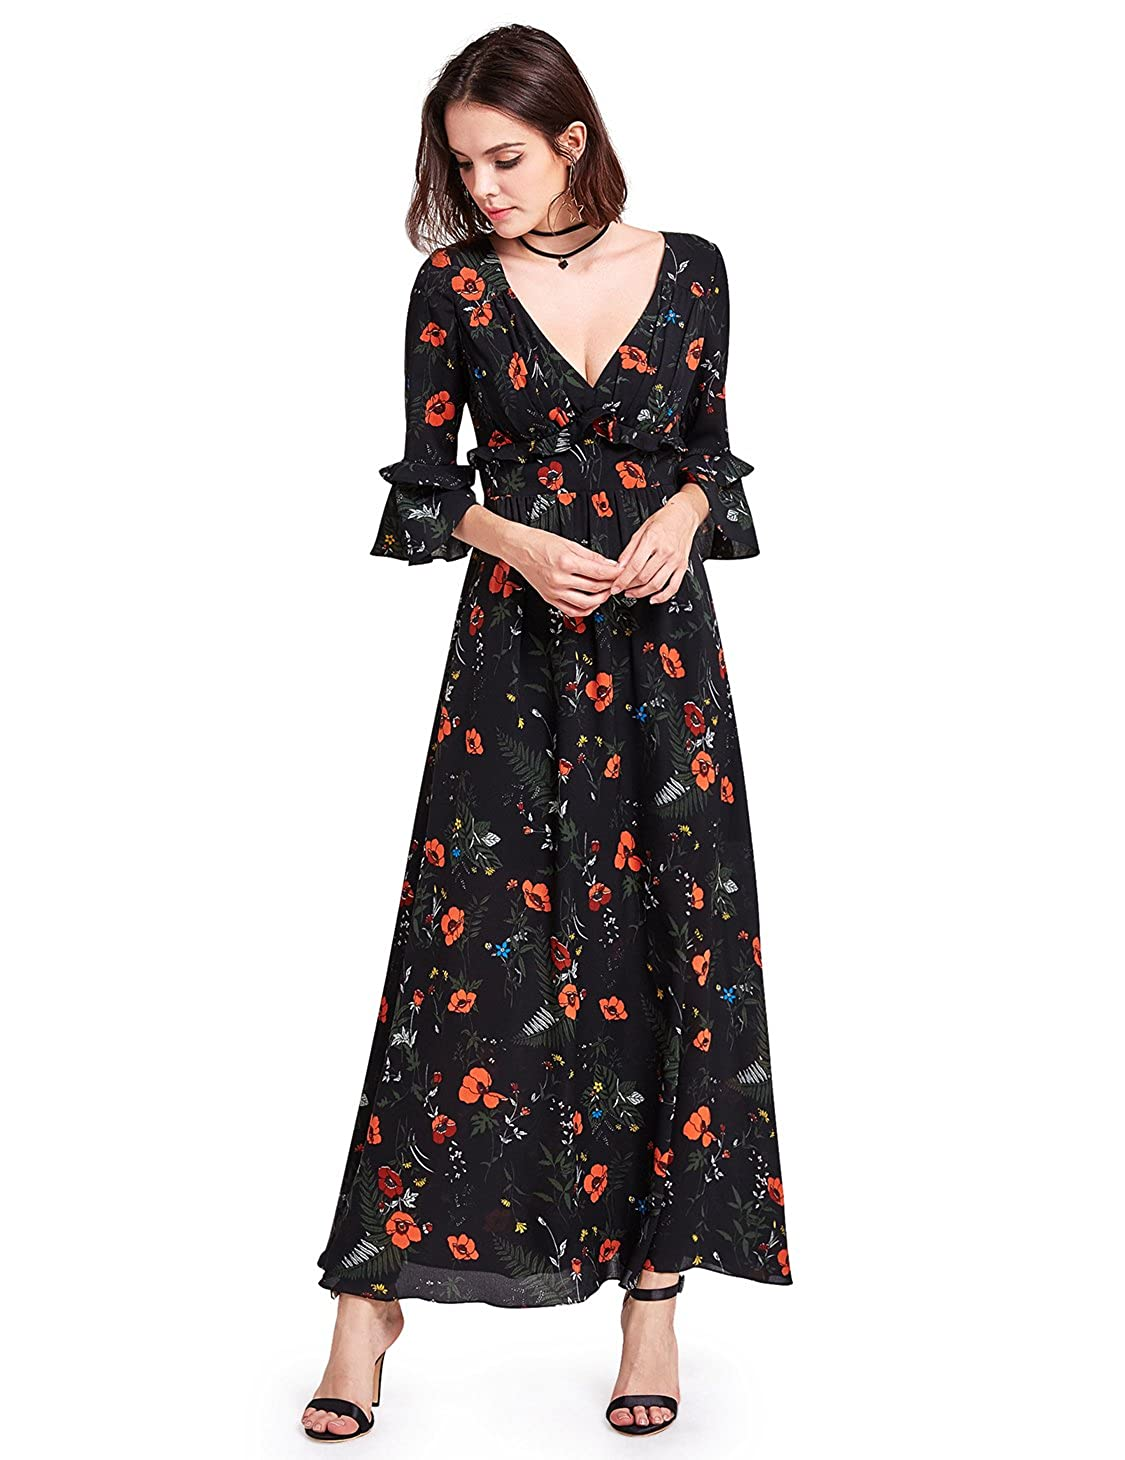 fe3b912a537 Alisapan V Neck Empire Waist Floral Print Maxi Dress with Long Sleeve 07170  at Amazon Women s Clothing store